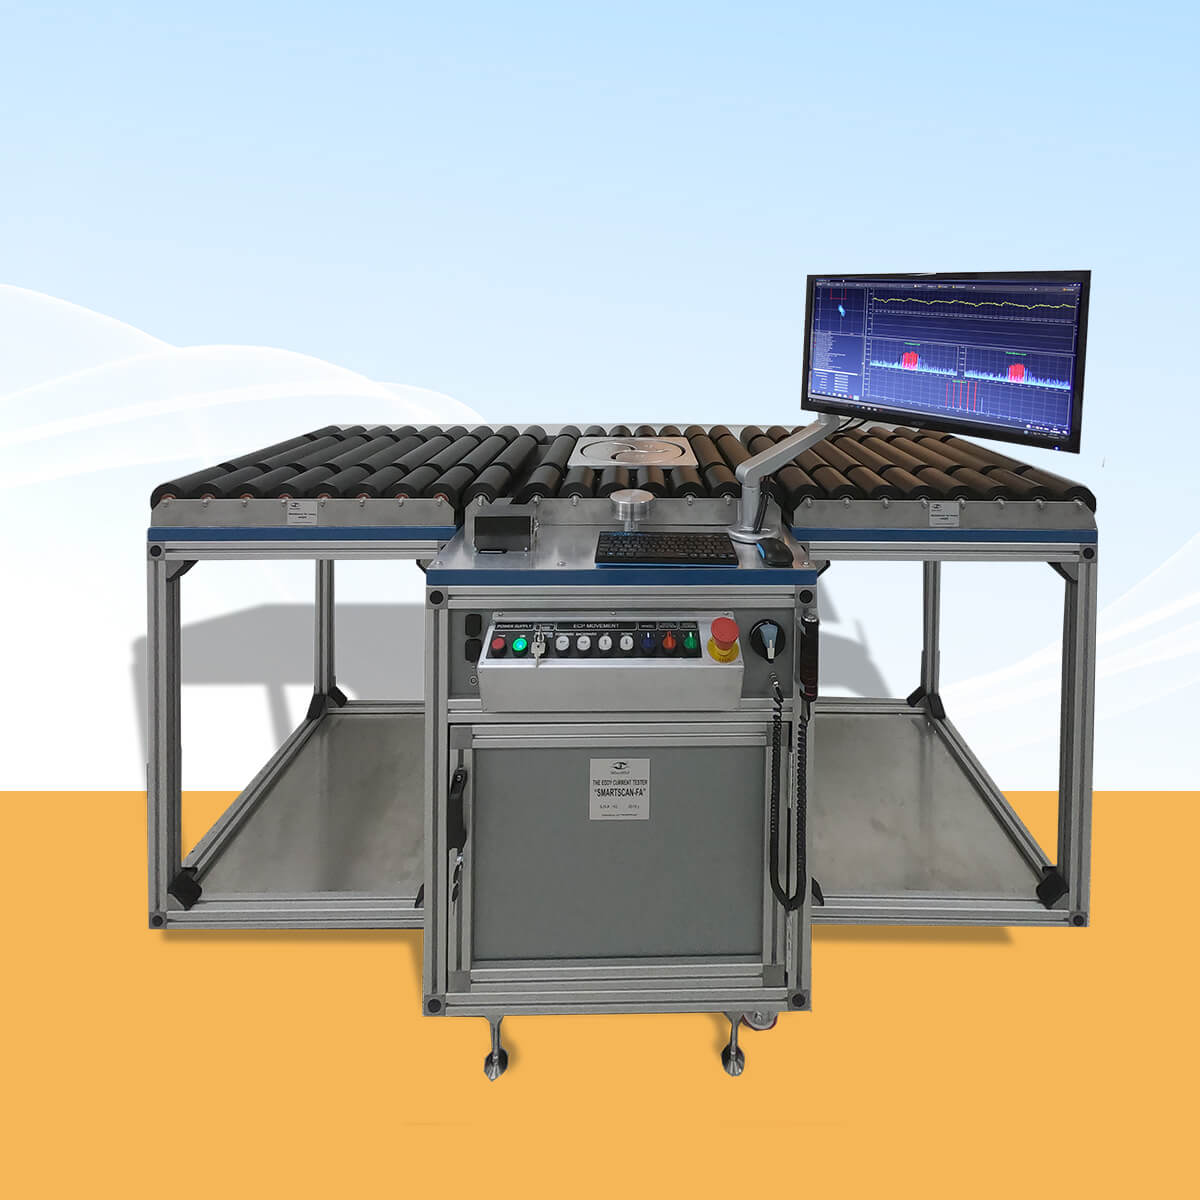 Eddy current aircraft wheel inspection system SMARTSCAN